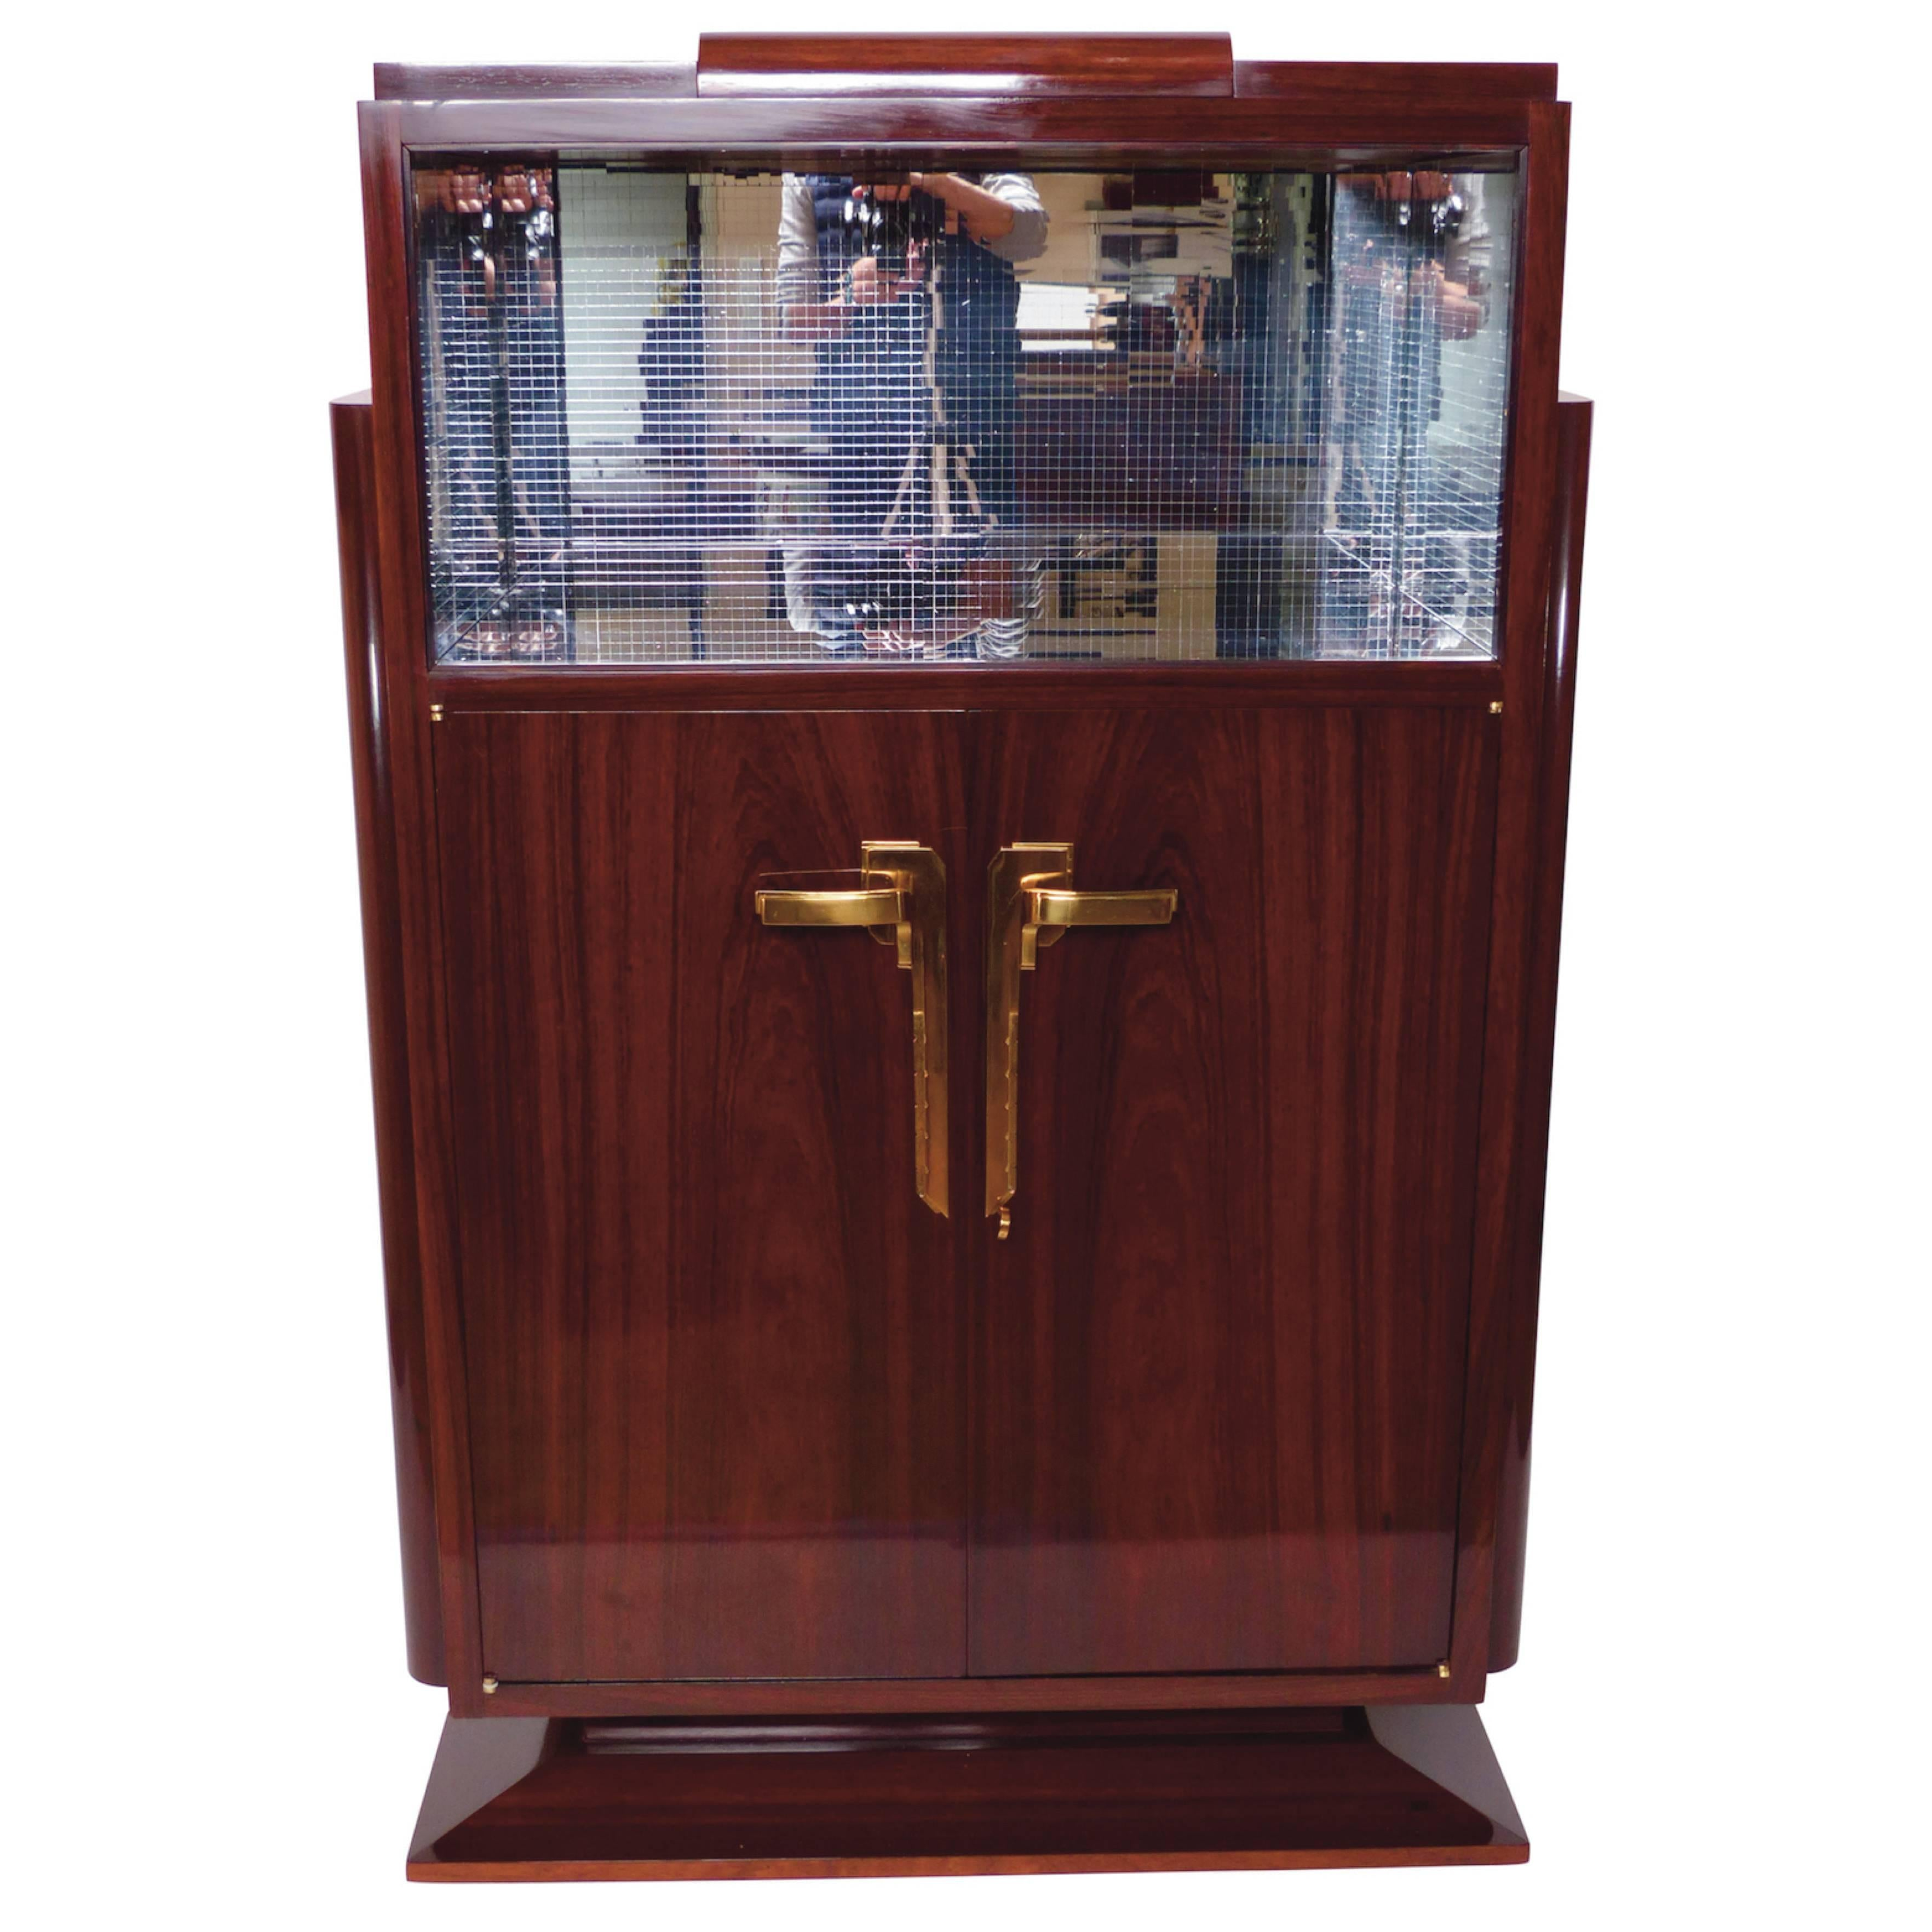 1930s Bar Cabinet In Real Wood Veneer, French Art Deco